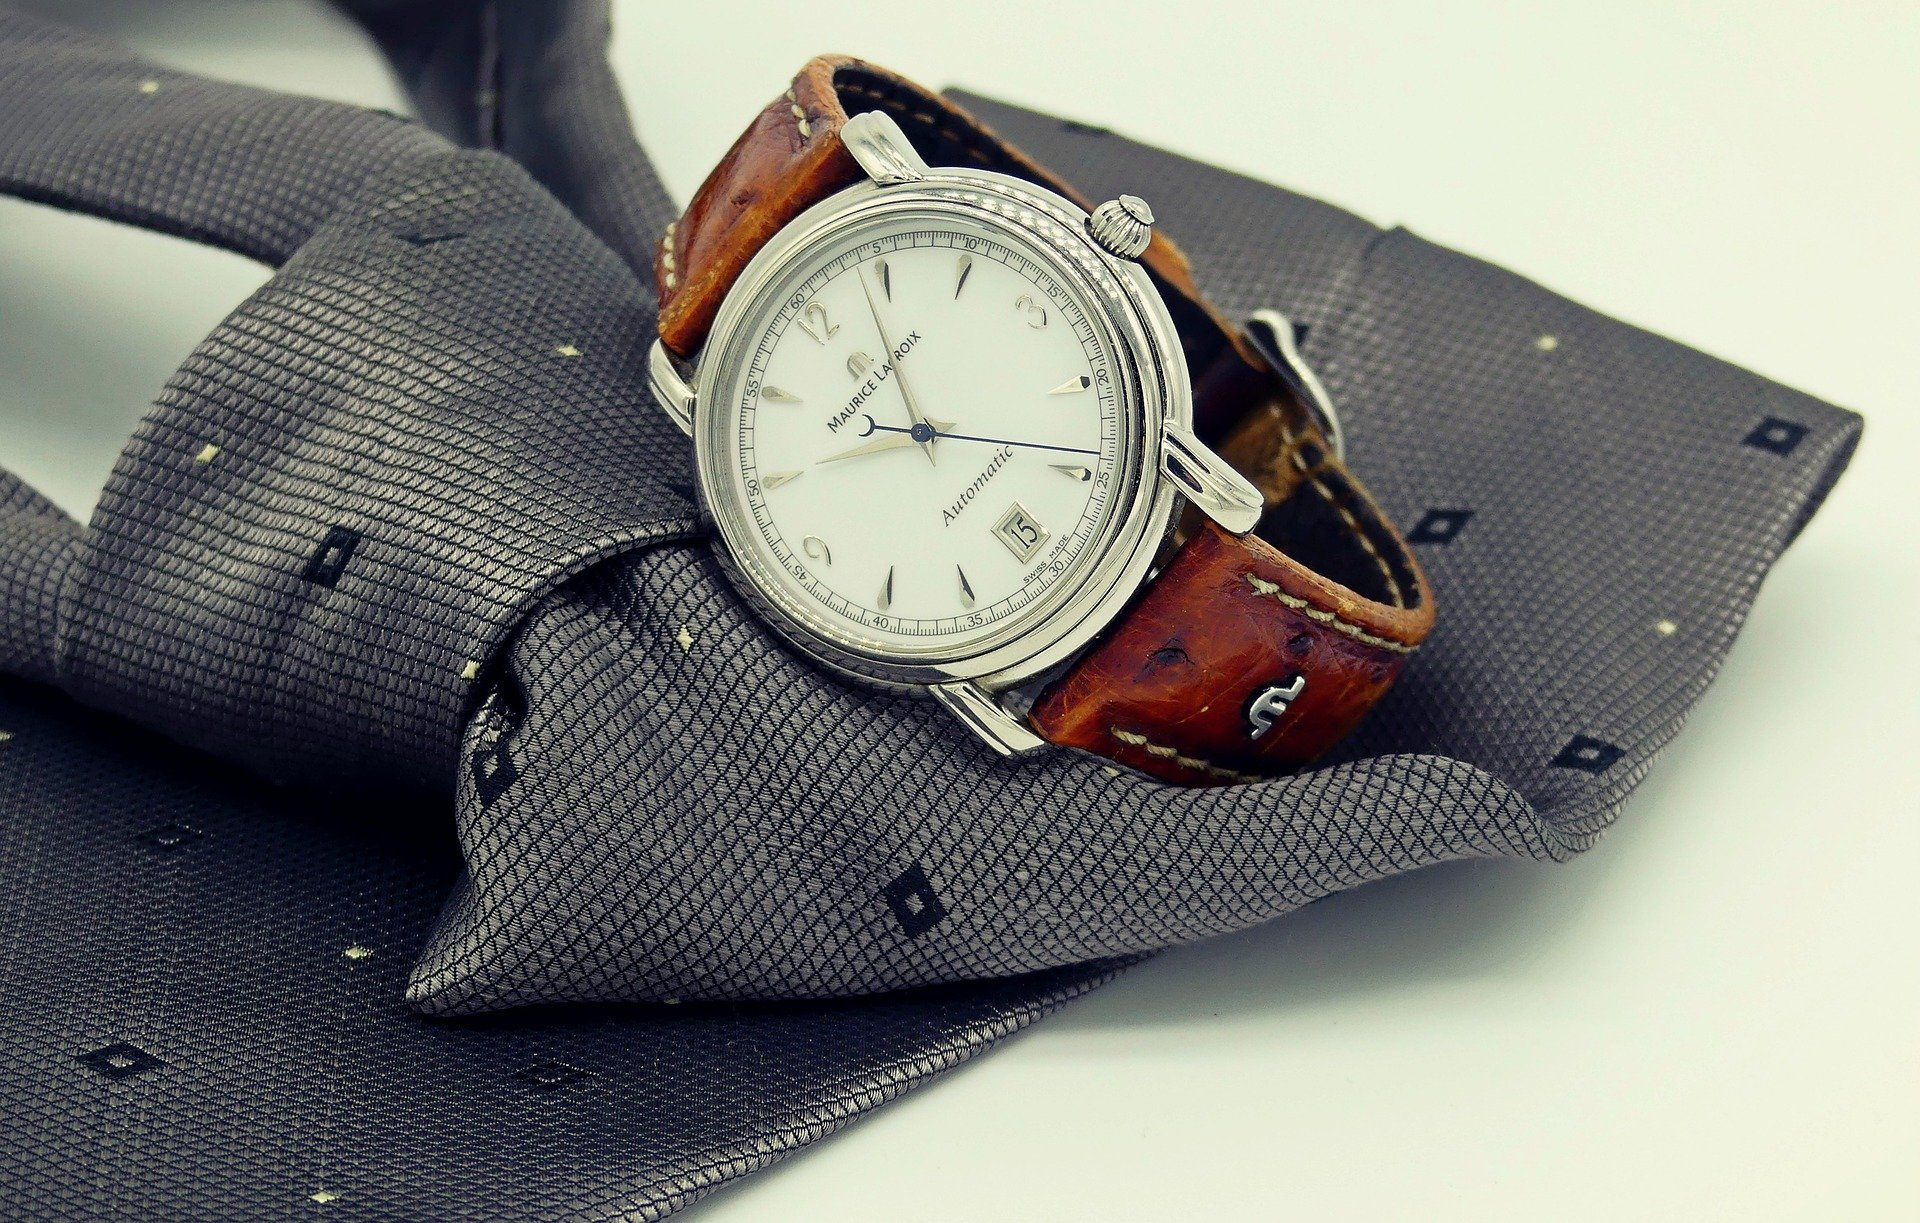 Best Easy to Read Watches for Seniors